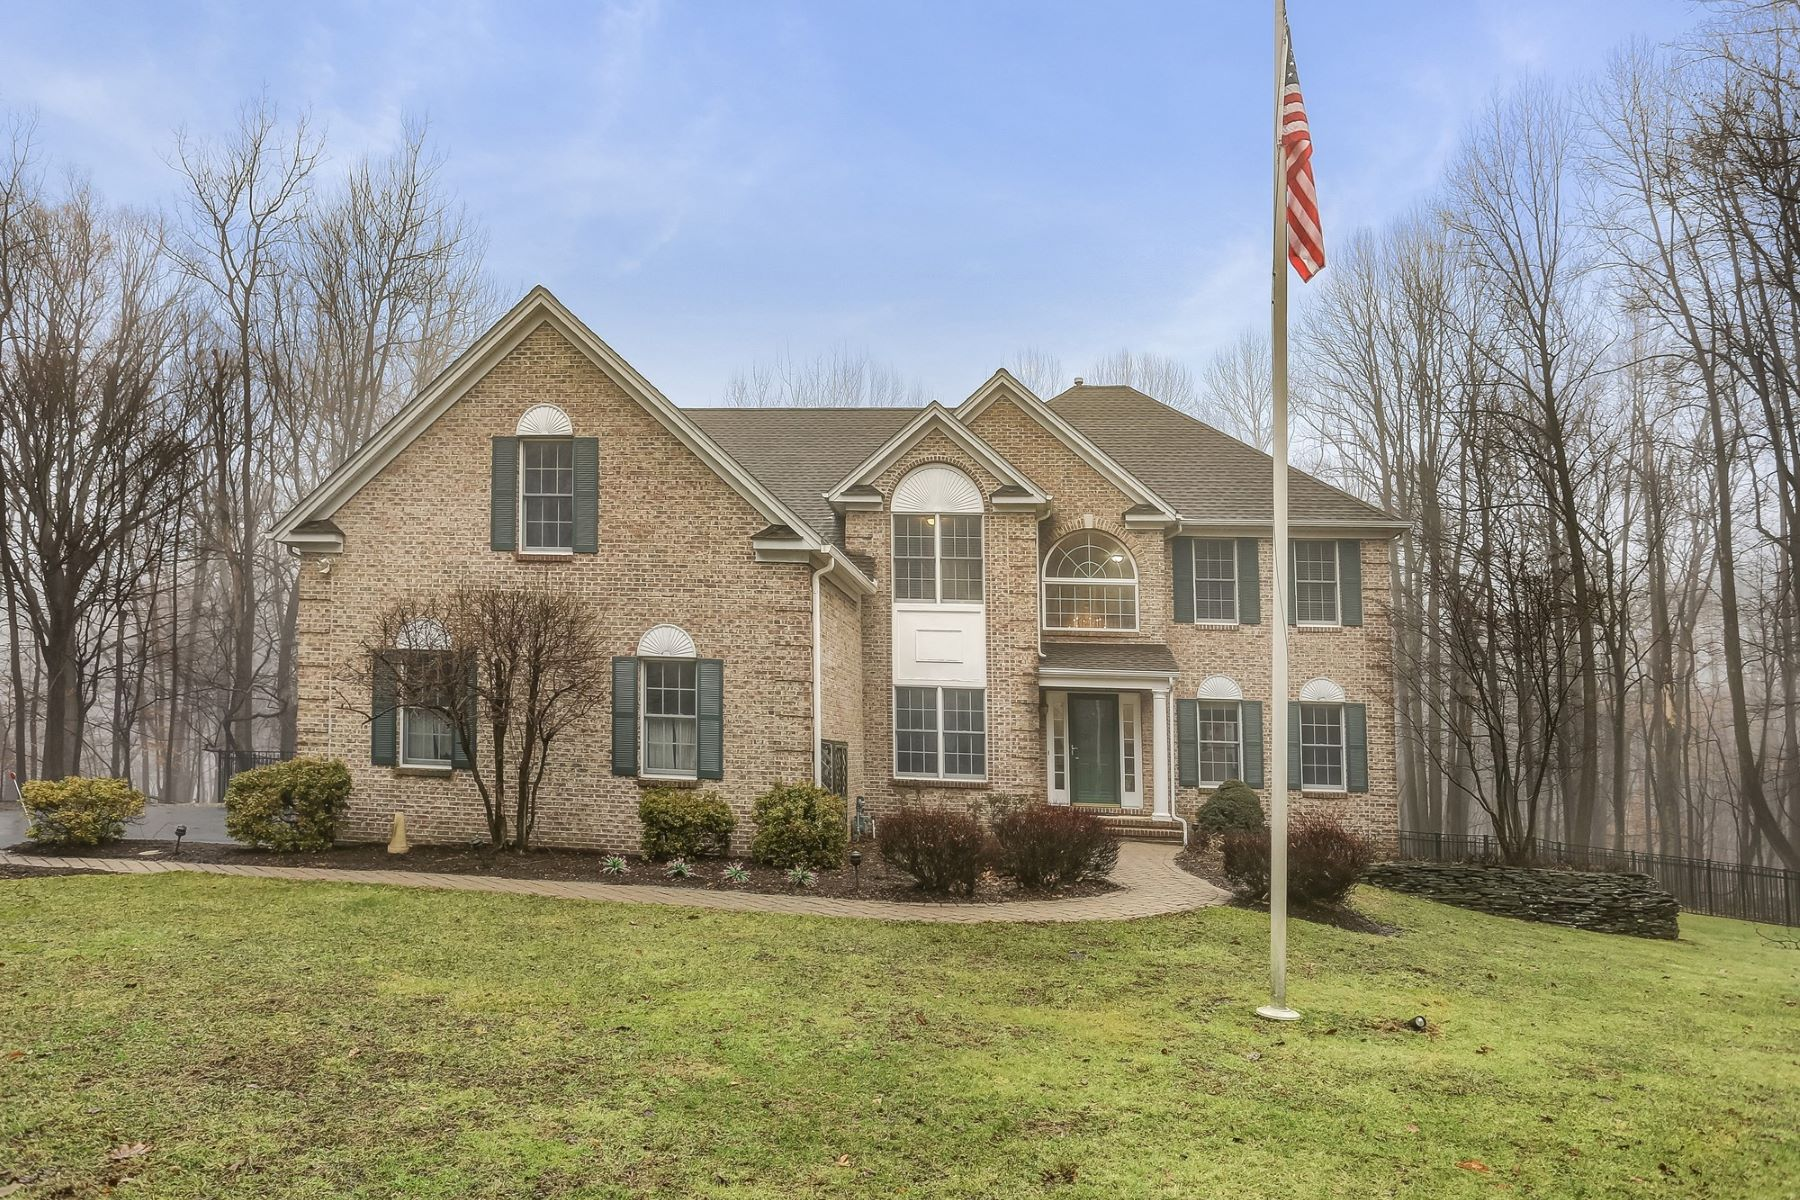 Single Family Homes for Sale at Classic Colonial 9 Wellington Drive, Long Valley, New Jersey 07853 United States